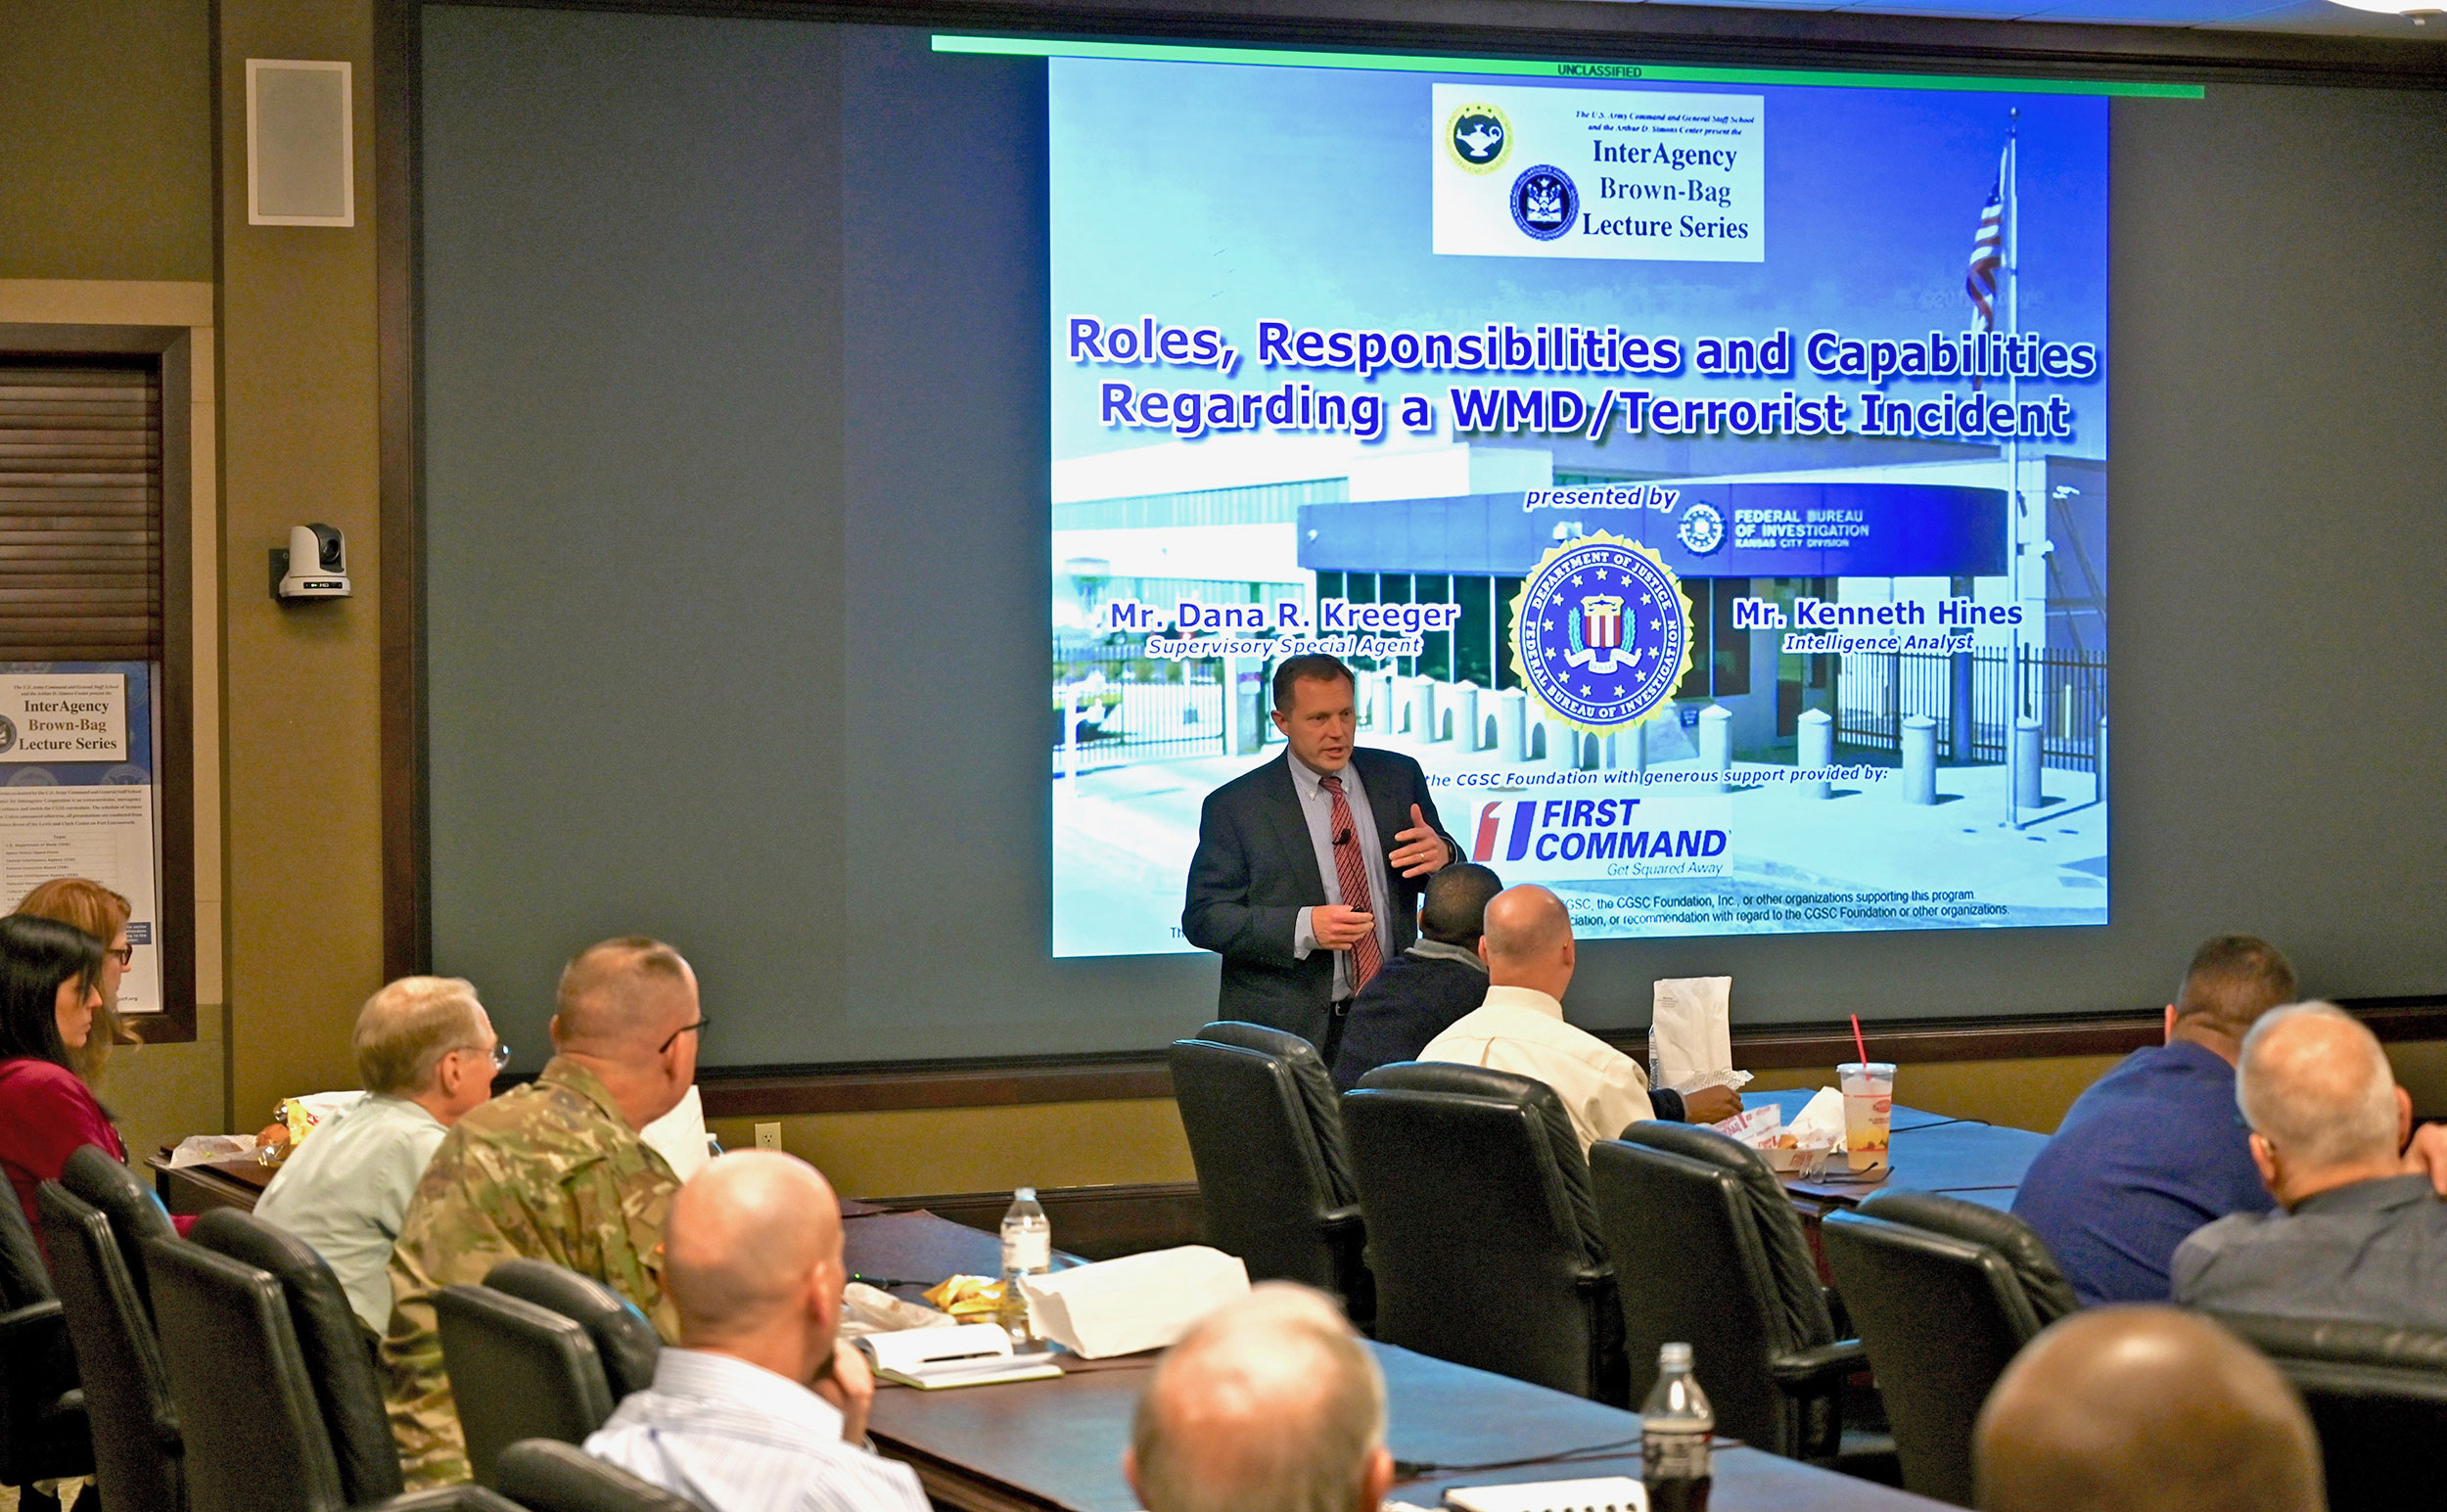 Supervisory Special Agent Dana Kreeger from the FBI's Kansas City Field Office kicks off the InterAgency Brown-Bag Lecture on Feb. 25, 2020, in the Arnold Conference Room of the Lewis and Clark Center.